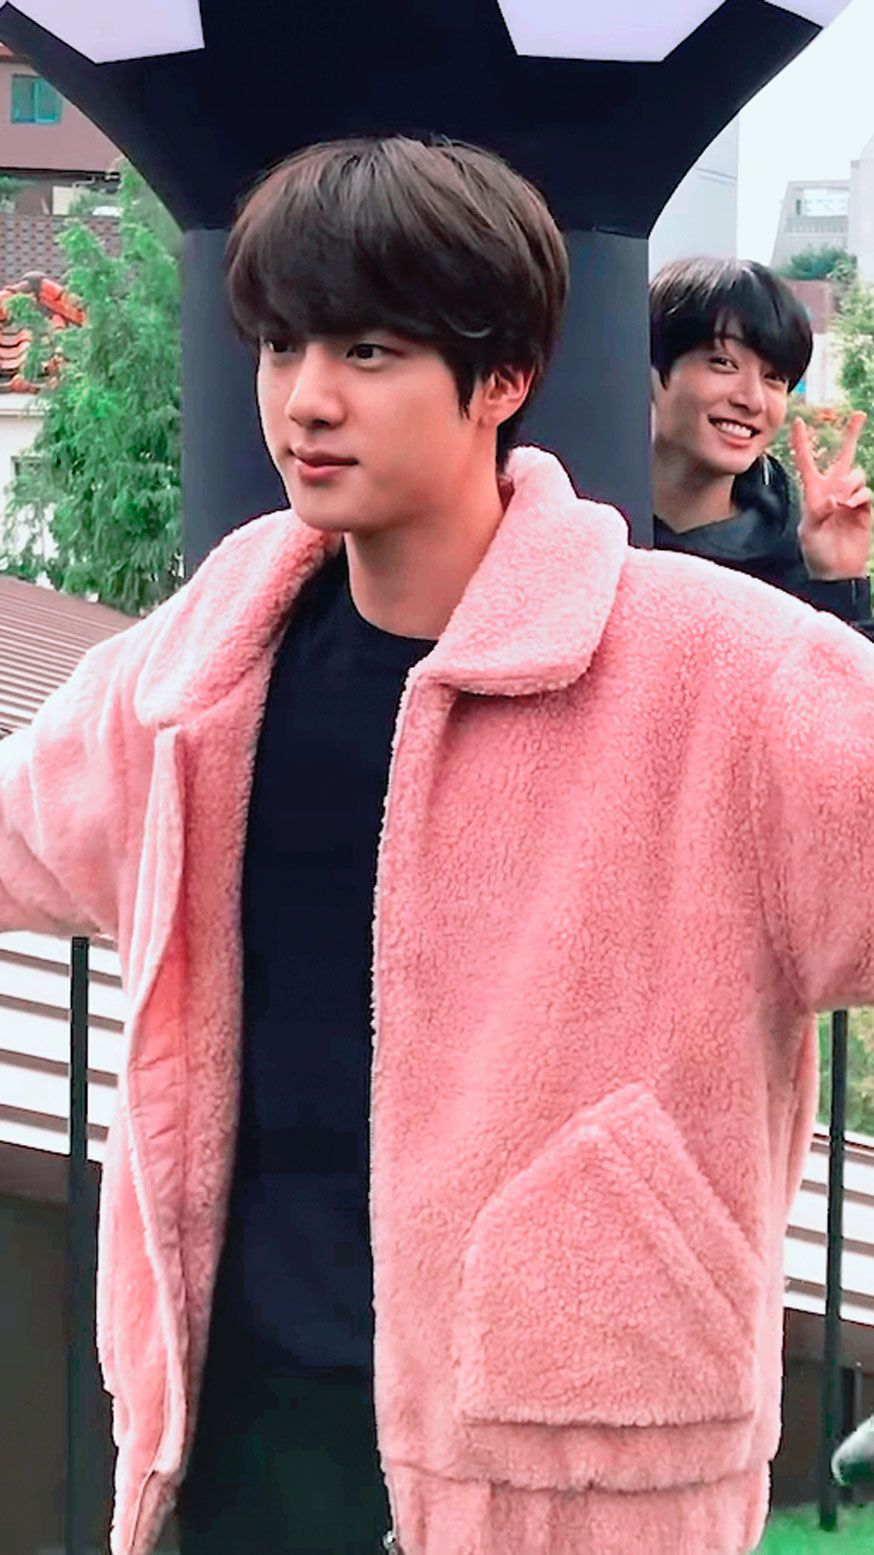 Episode Welcome To Bts Pop Up House Of Bts Kim Seokjin Worldwide Handsome Seokjin